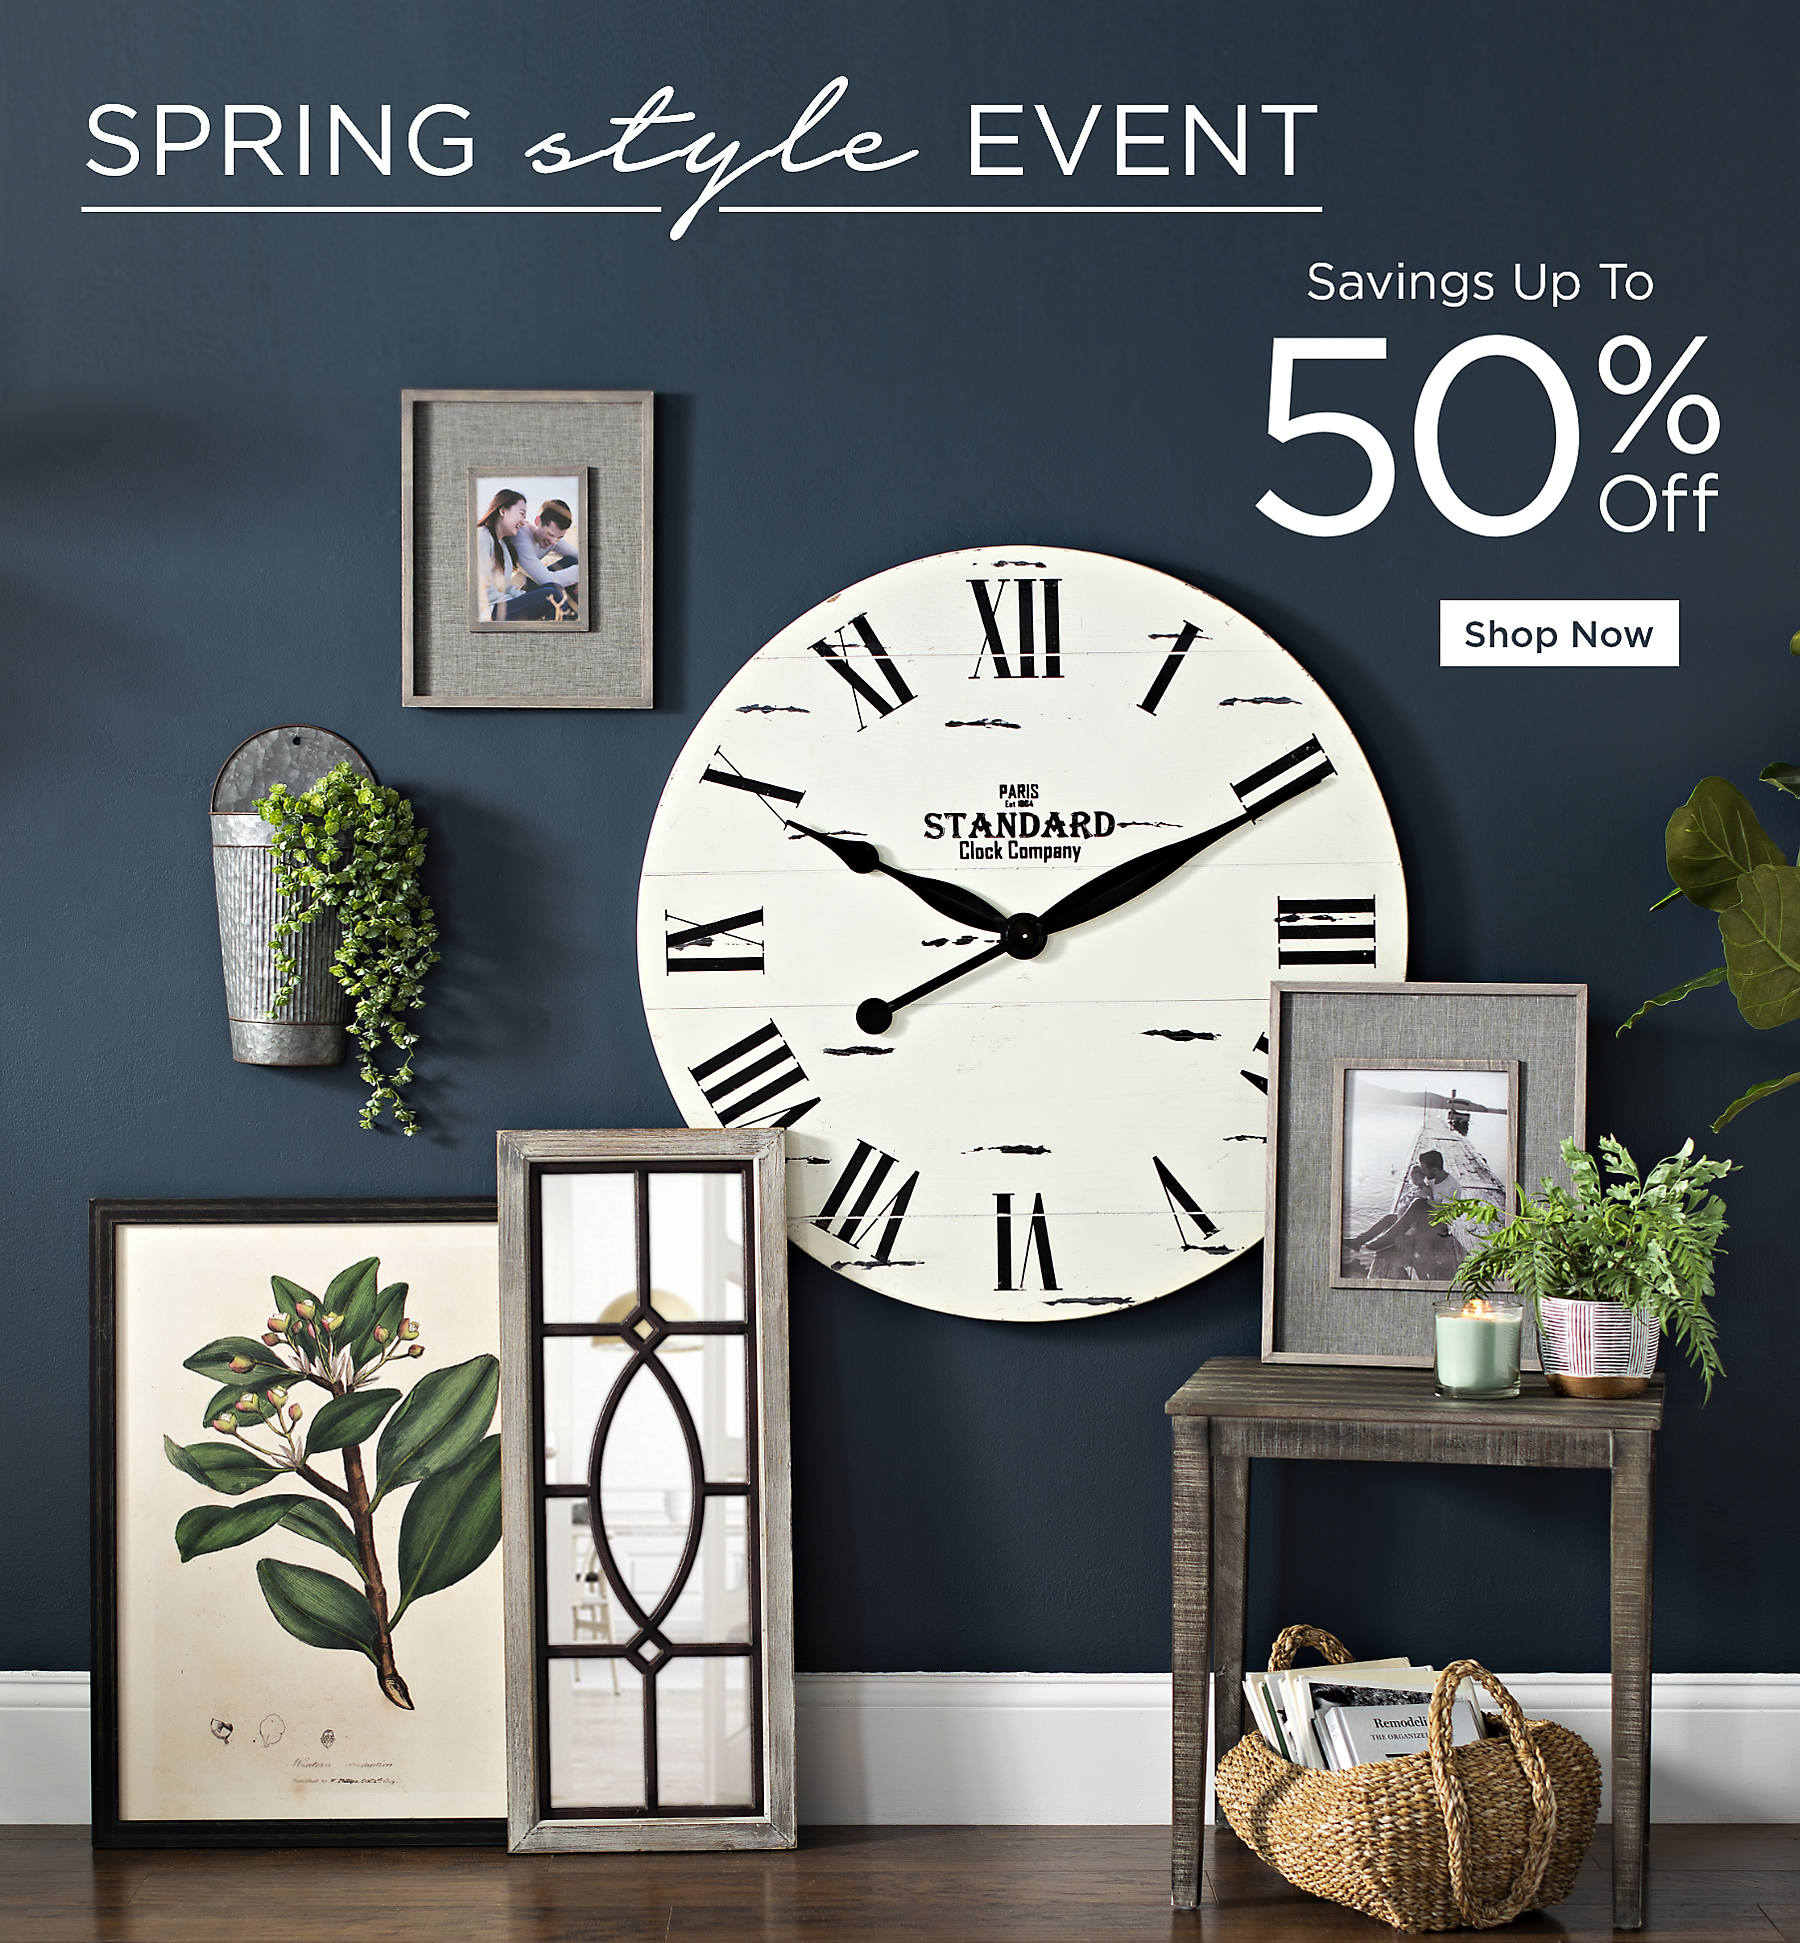 Spring Style Event Savings up to 50% Off Shop Now